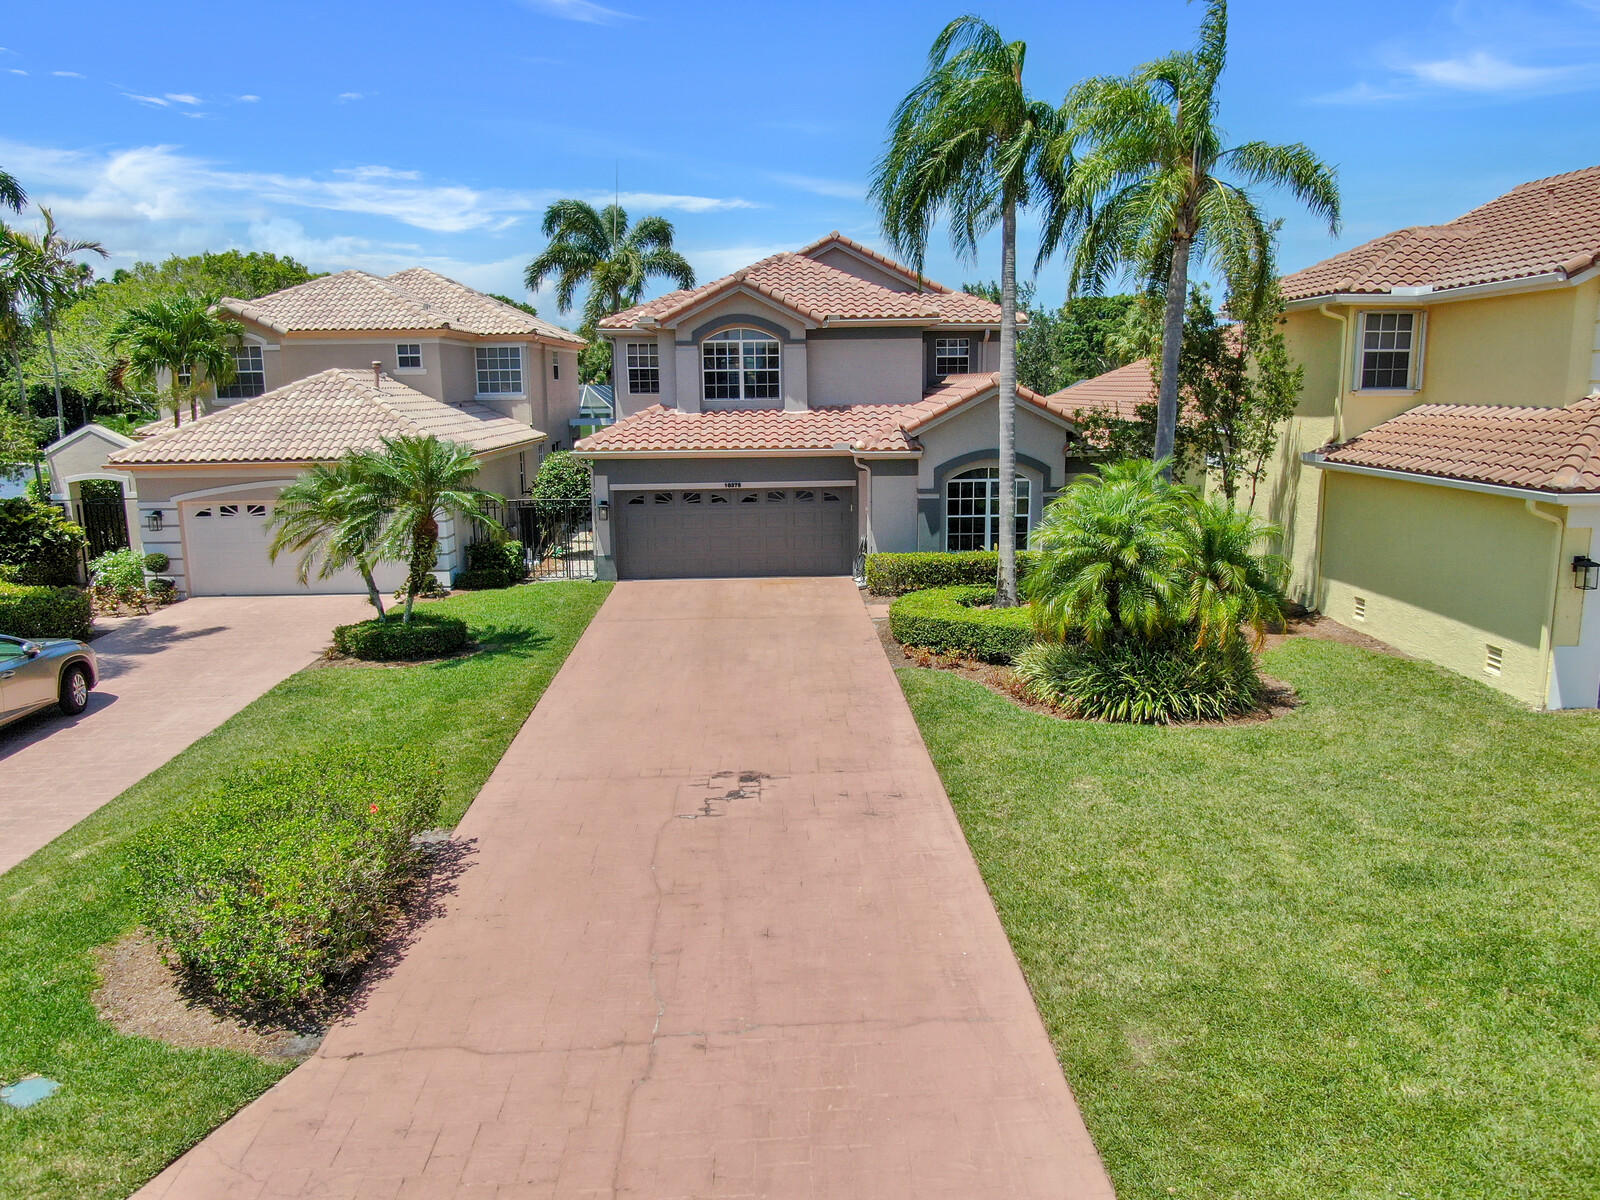 Home for sale in Ibis - Osprey Creek West Palm Beach Florida